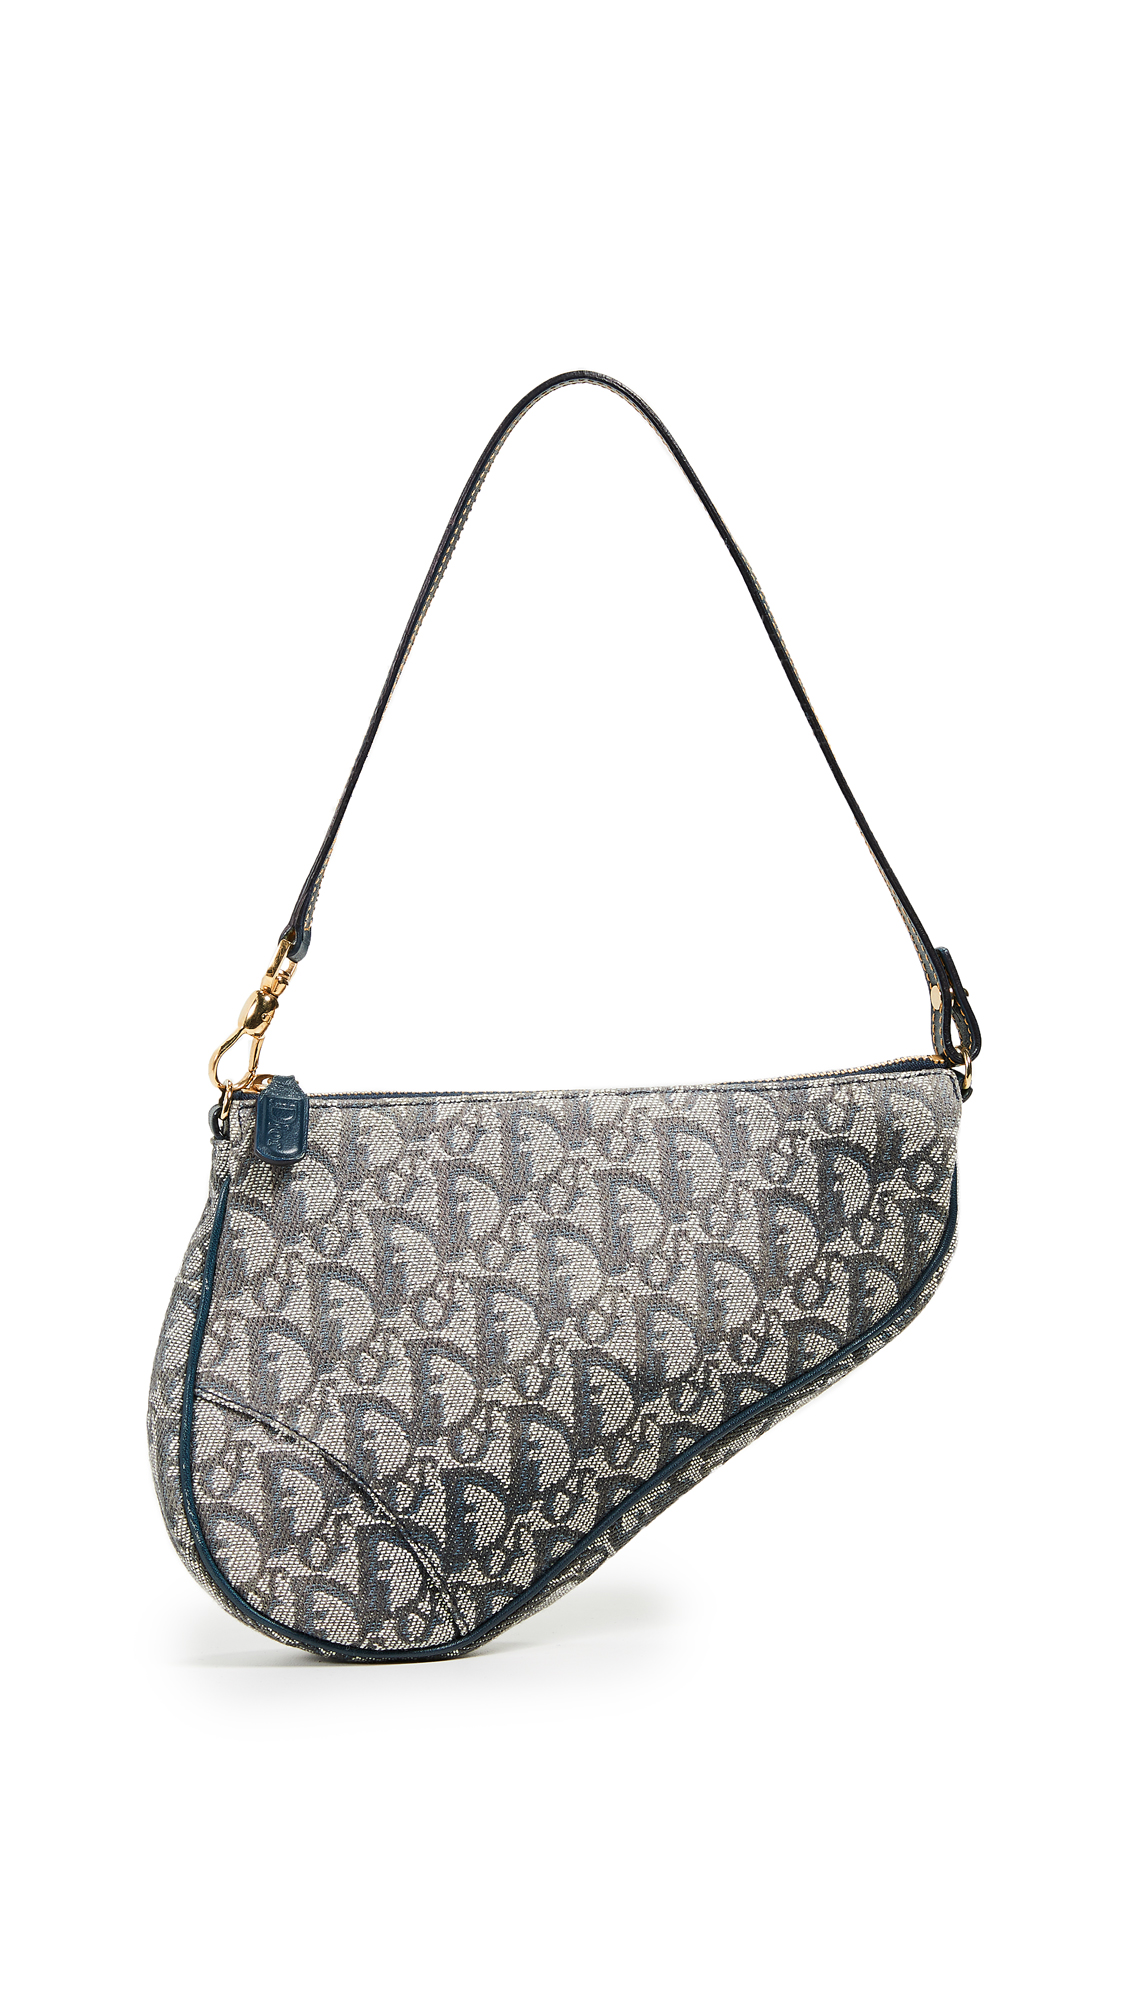 WHAT GOES AROUND COMES AROUND Dior Trotter Mini Saddle Bag in Navy